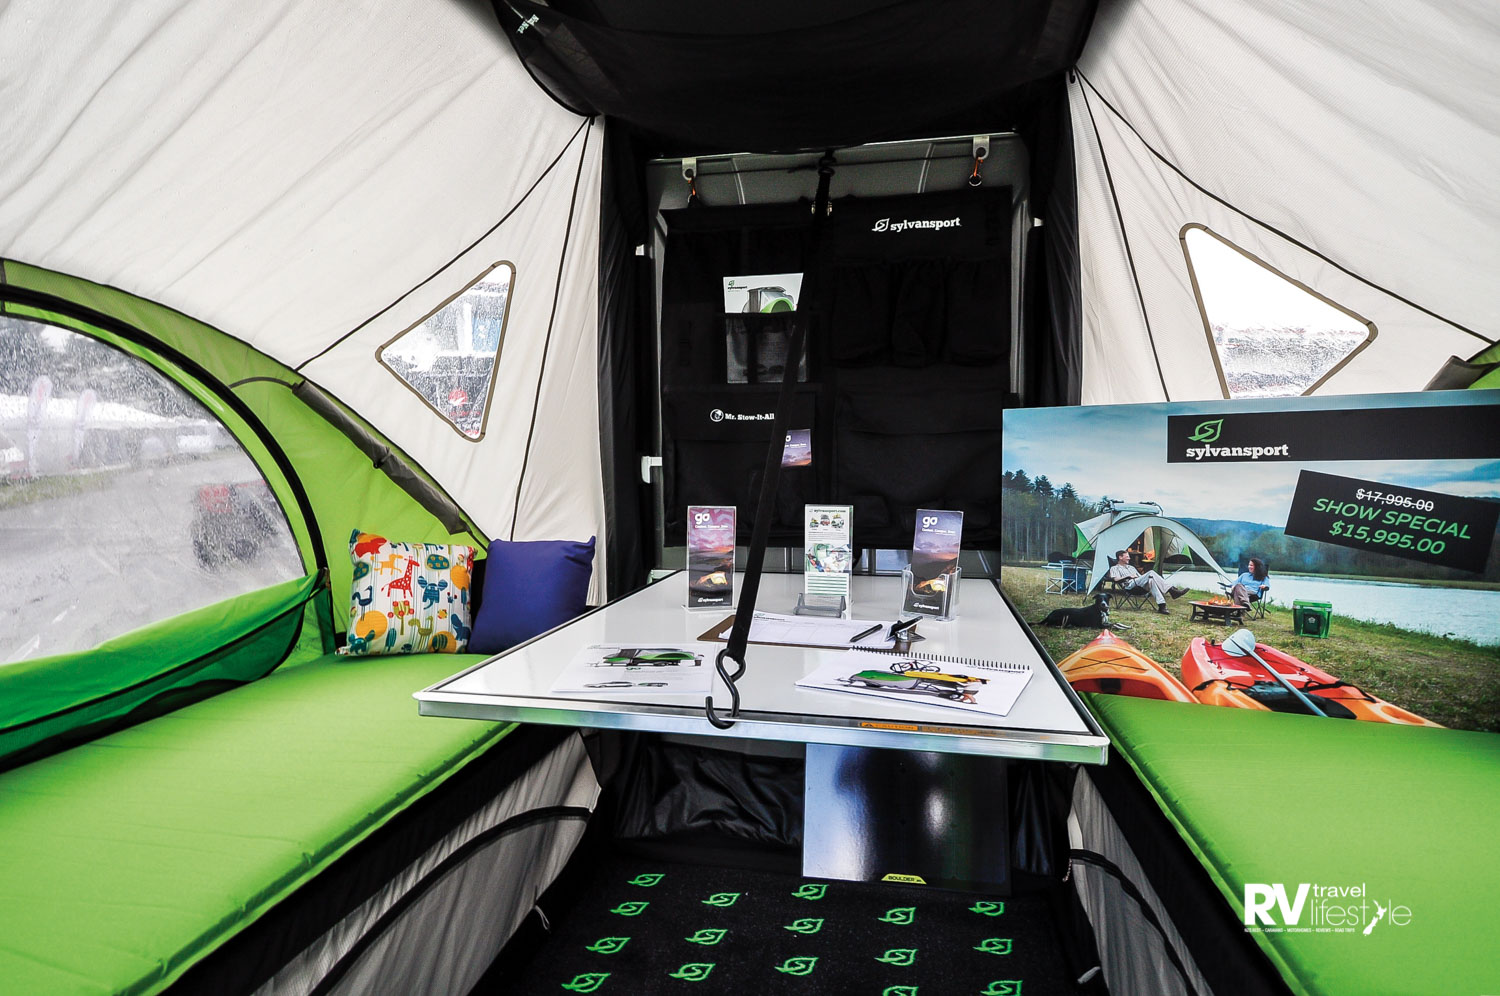 Inside, the SylvanSport Go is roomy with three alternative layouts